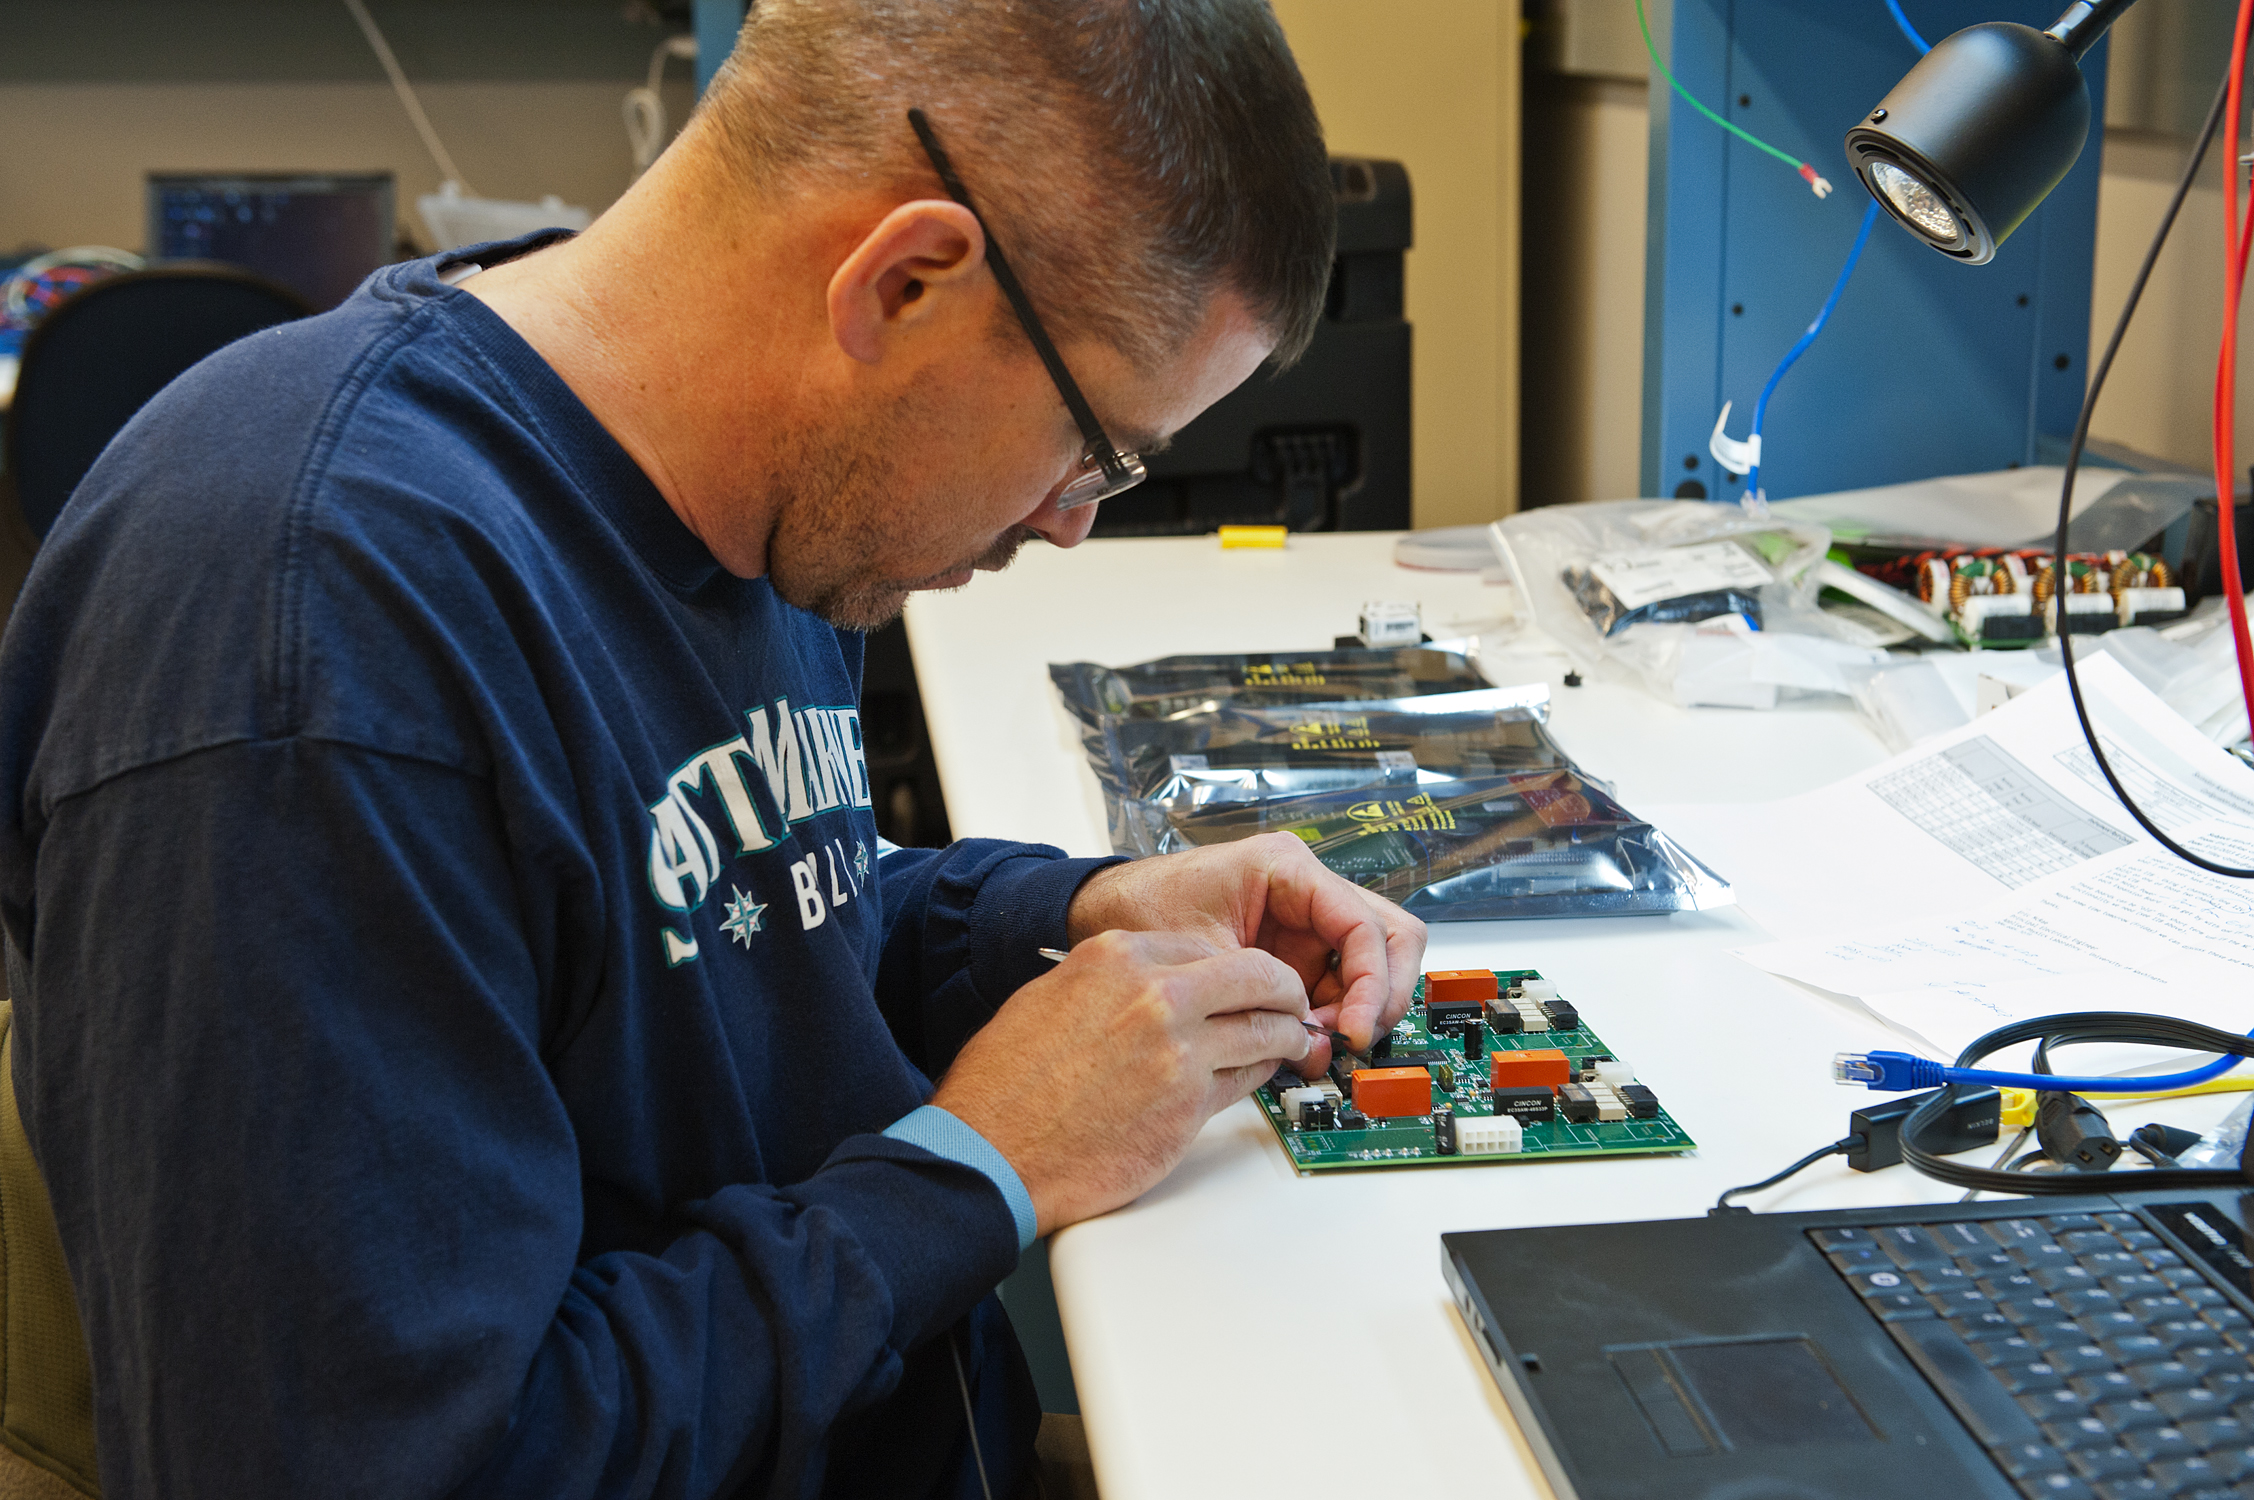 Person working on circuit board